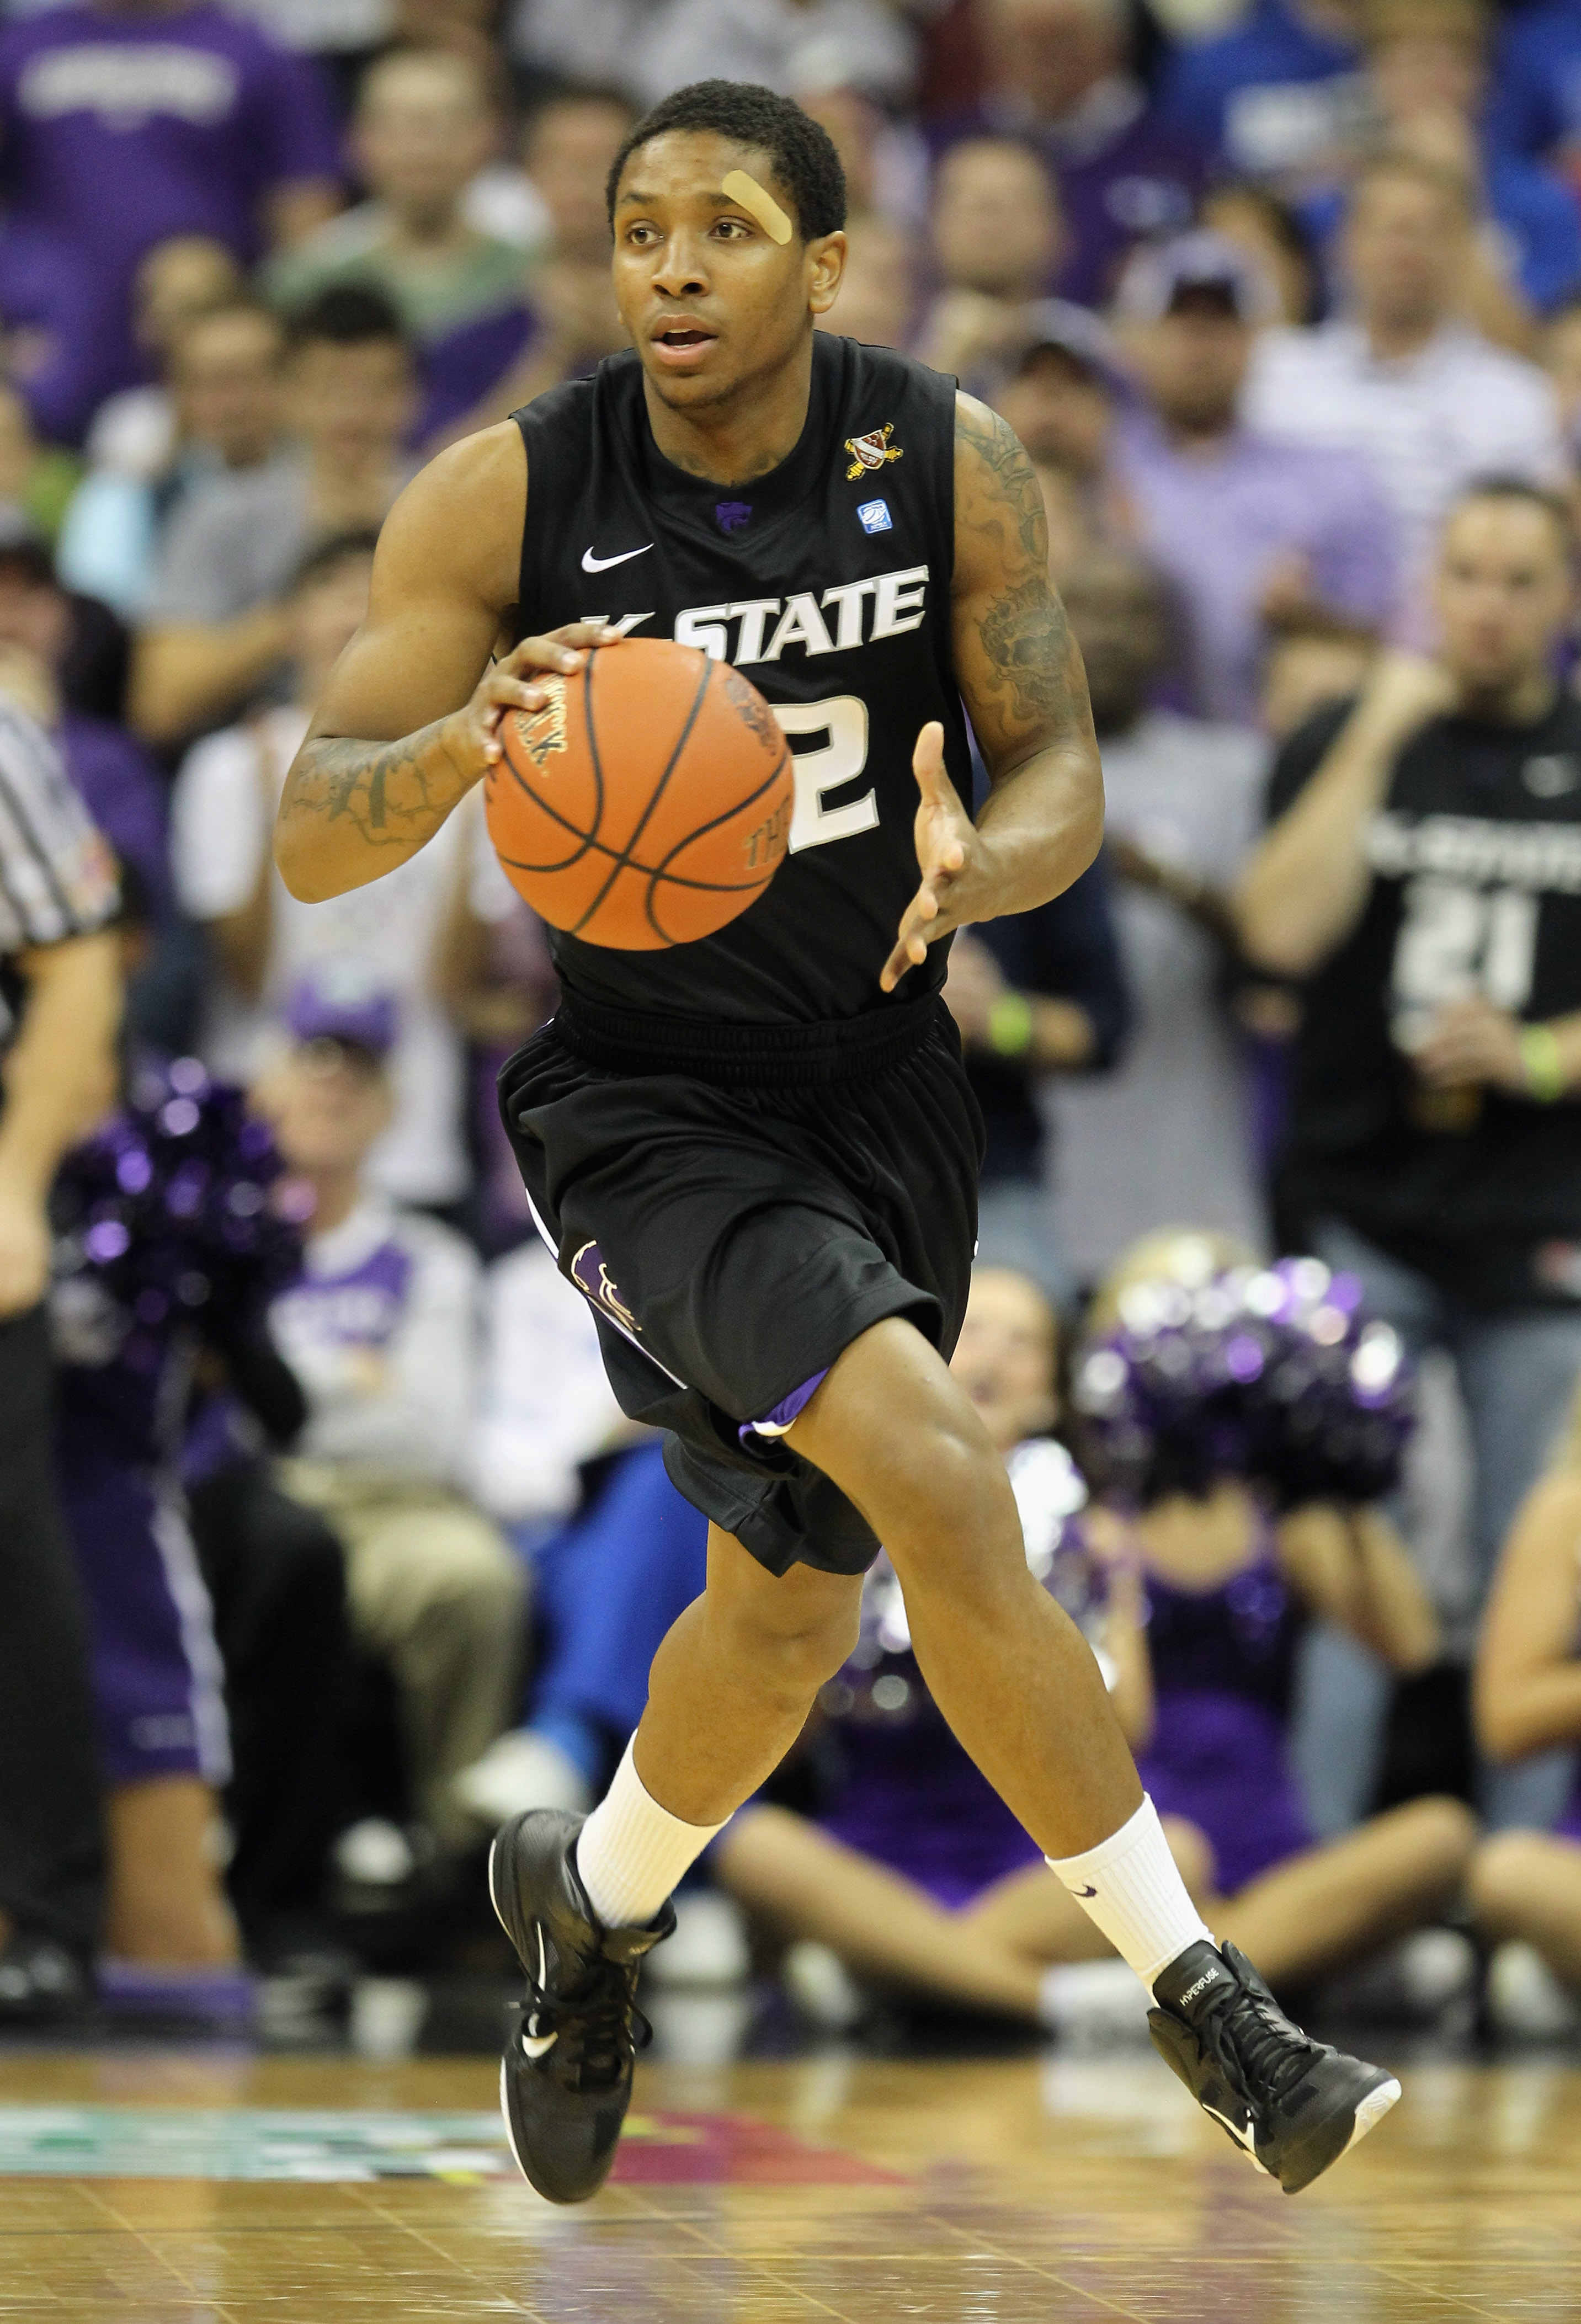 KANSAS CITY, MO - NOVEMBER 22:  Rodney McGruder #22 of the Kansas State Wildcats in action  during the CBE Classic game against the Gonzaga Bulldogs on November 22, 2010 at the Sprint Center in Kansas City, Missouri.  (Photo by Jamie Squire/Getty Images)